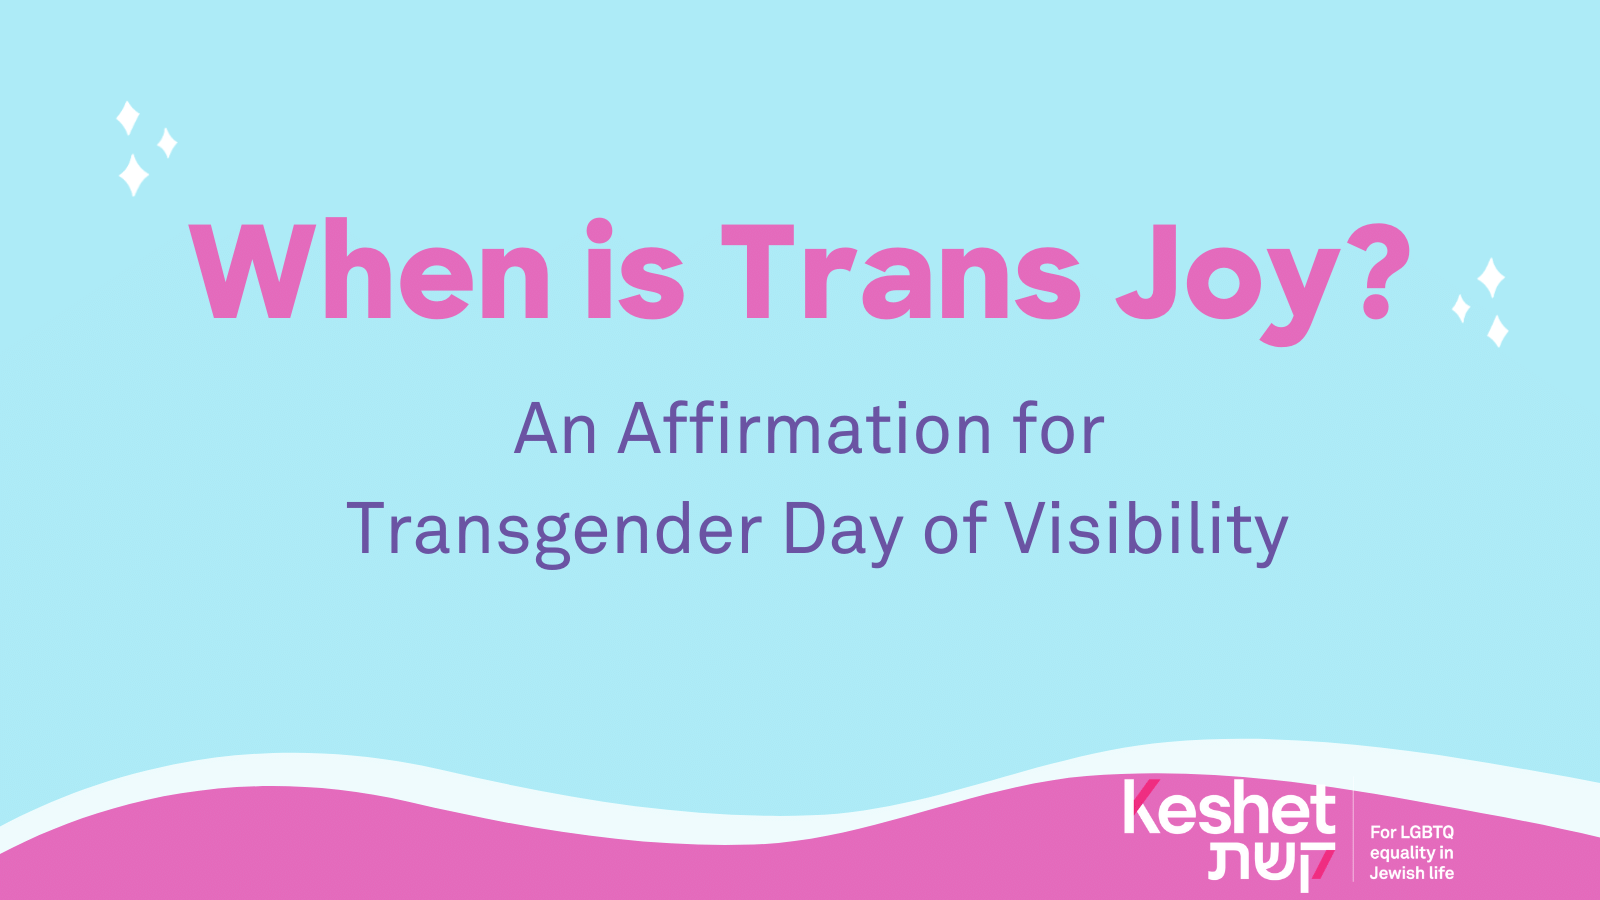 When is Trans Joy?